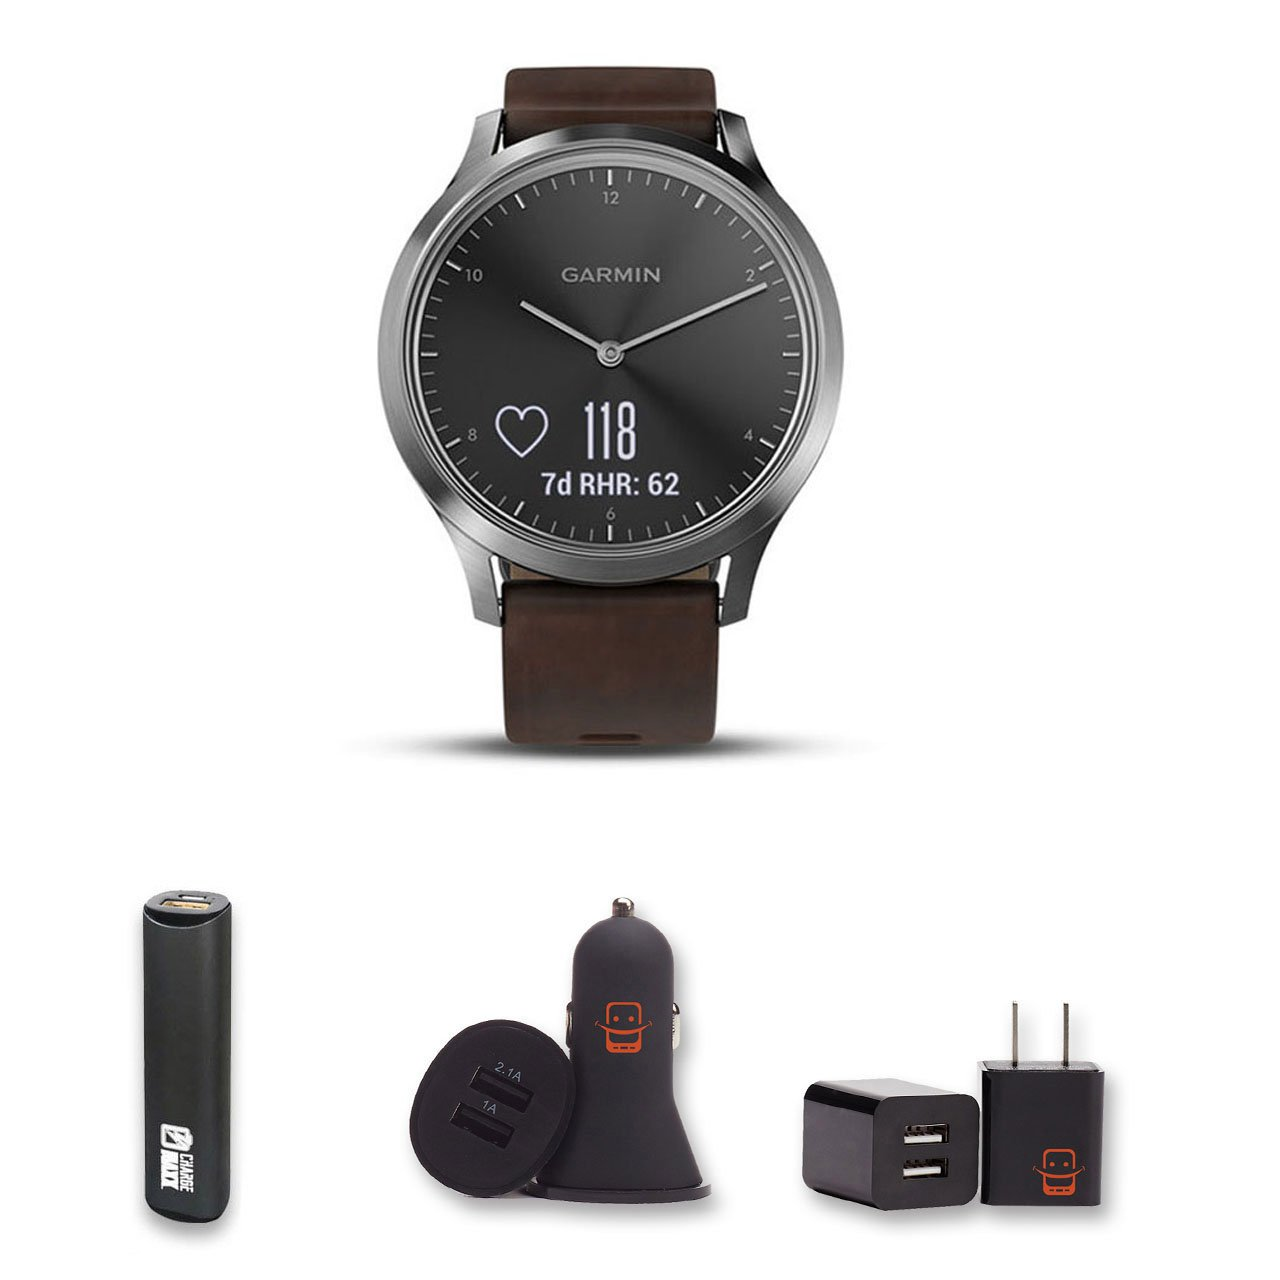 Garmin Vivomove HR Premium (Black/Silver with Leather Band) Large Hybrid Smartwatch Bundle with PowerBank + USB Car Charger + USB Wall Charger (4 Items)